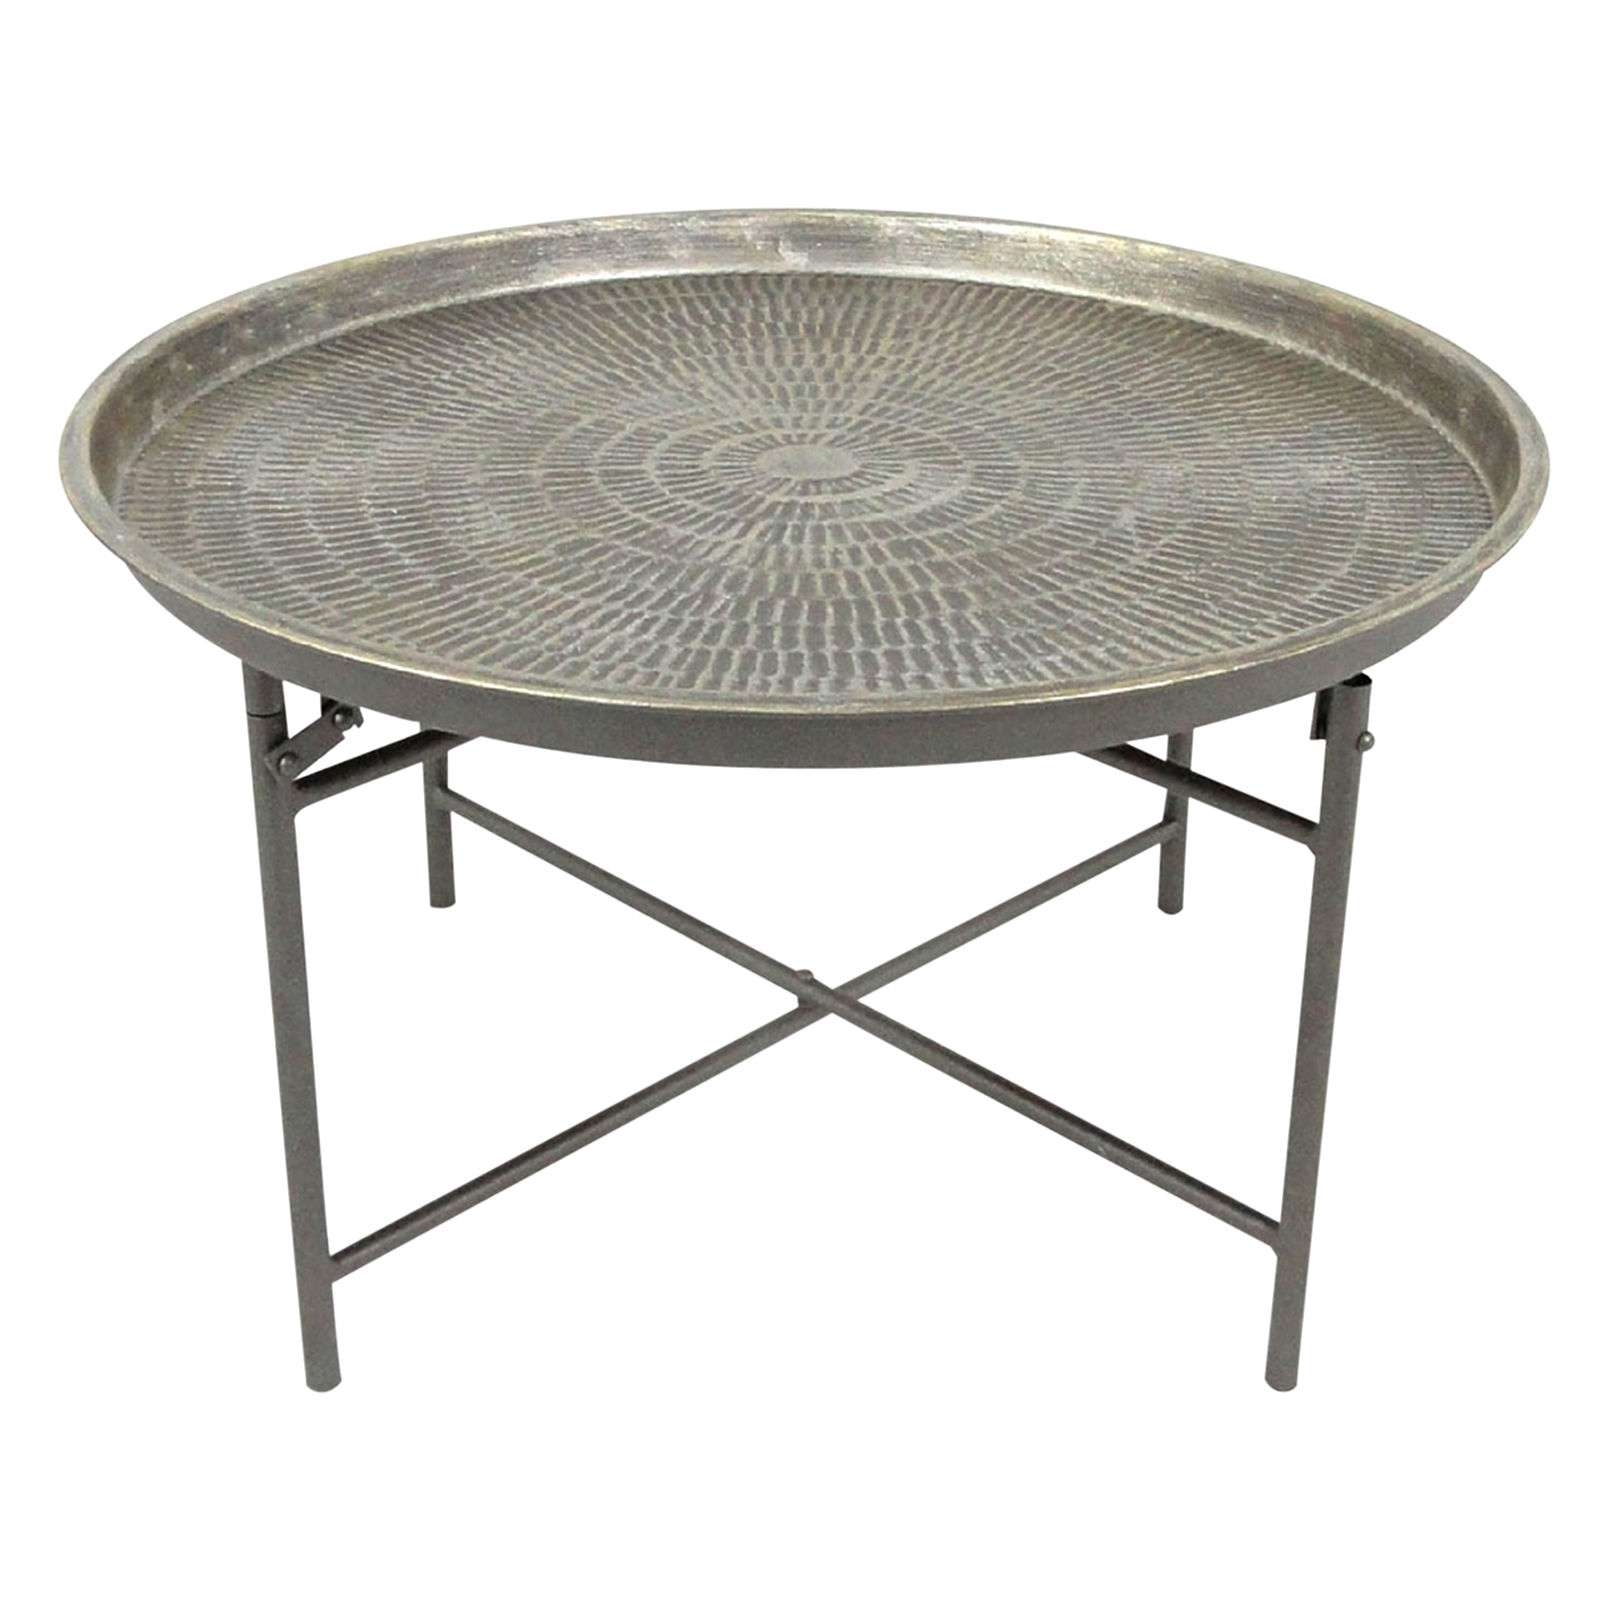 Tea Table Design Furniture Home Decor Amp Interior Exterior ~ Displaying gallery of round steel coffee tables view